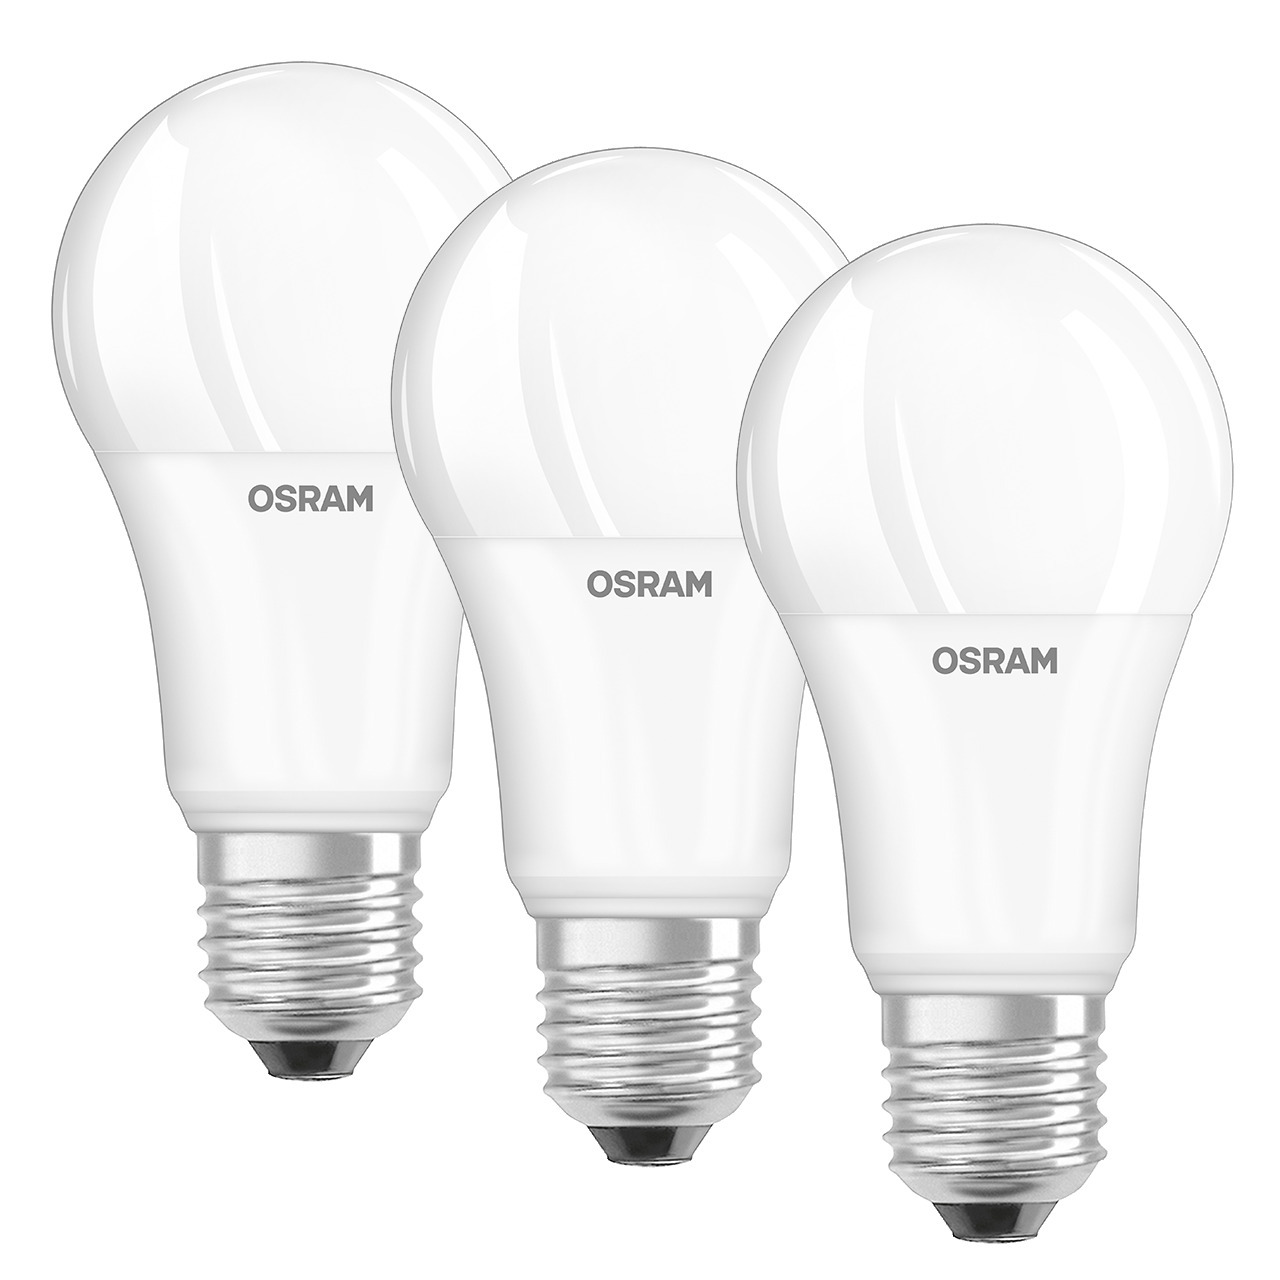 OSRAM 3er Set 14-W-Filament-LED-Lampe E27- neutralweiss- matt